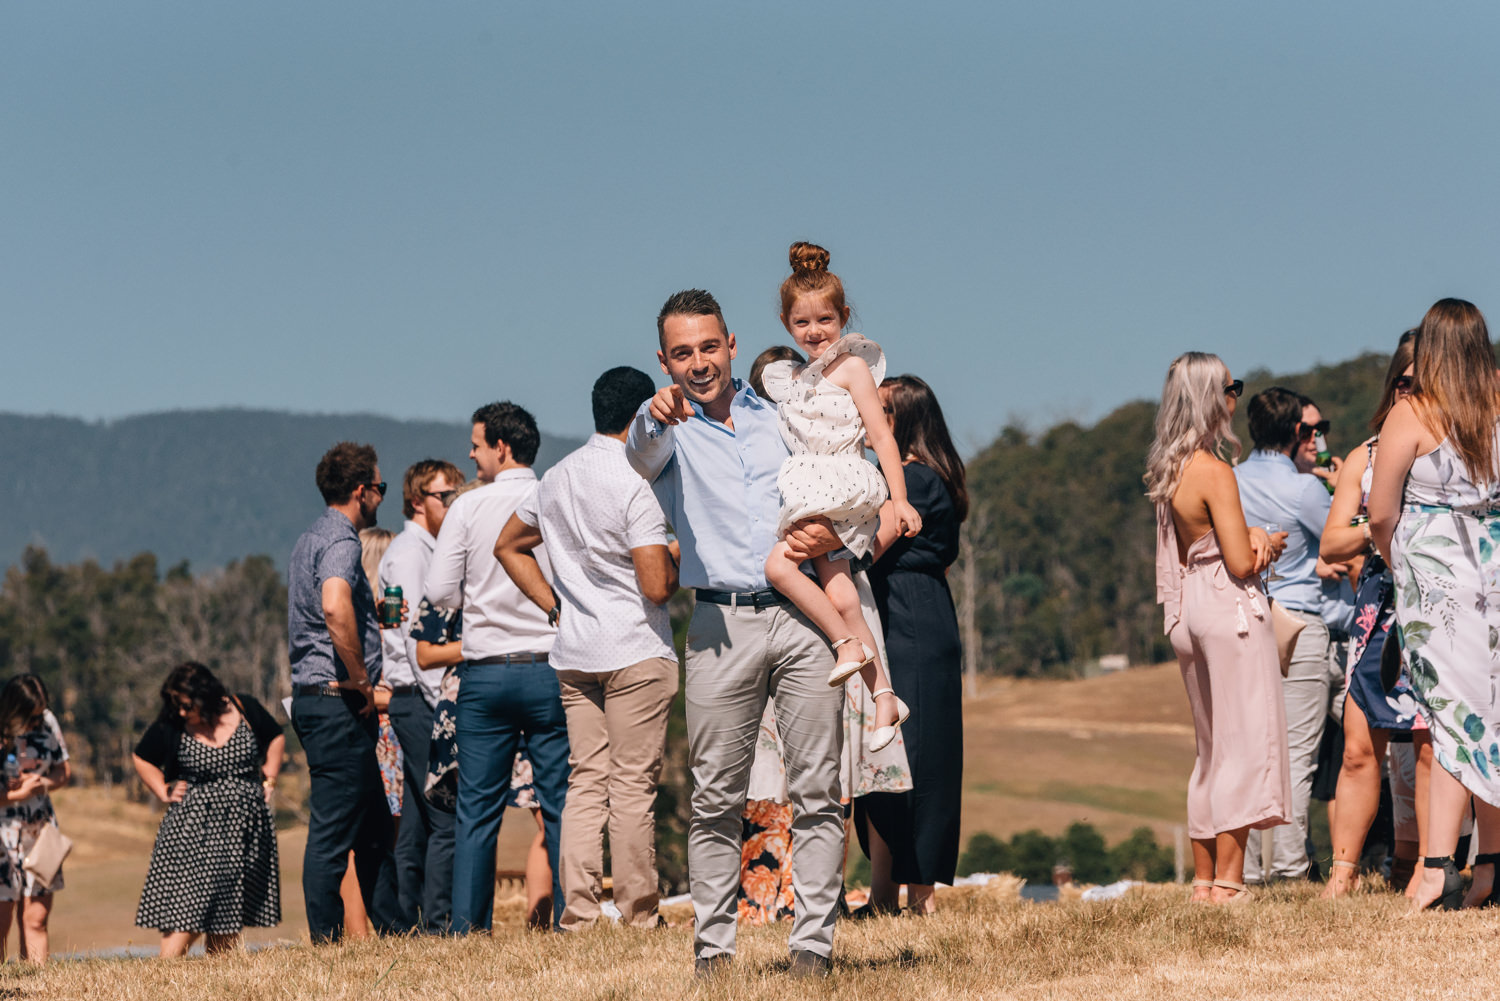 Launceston-Wedding-Photographer-33.jpg